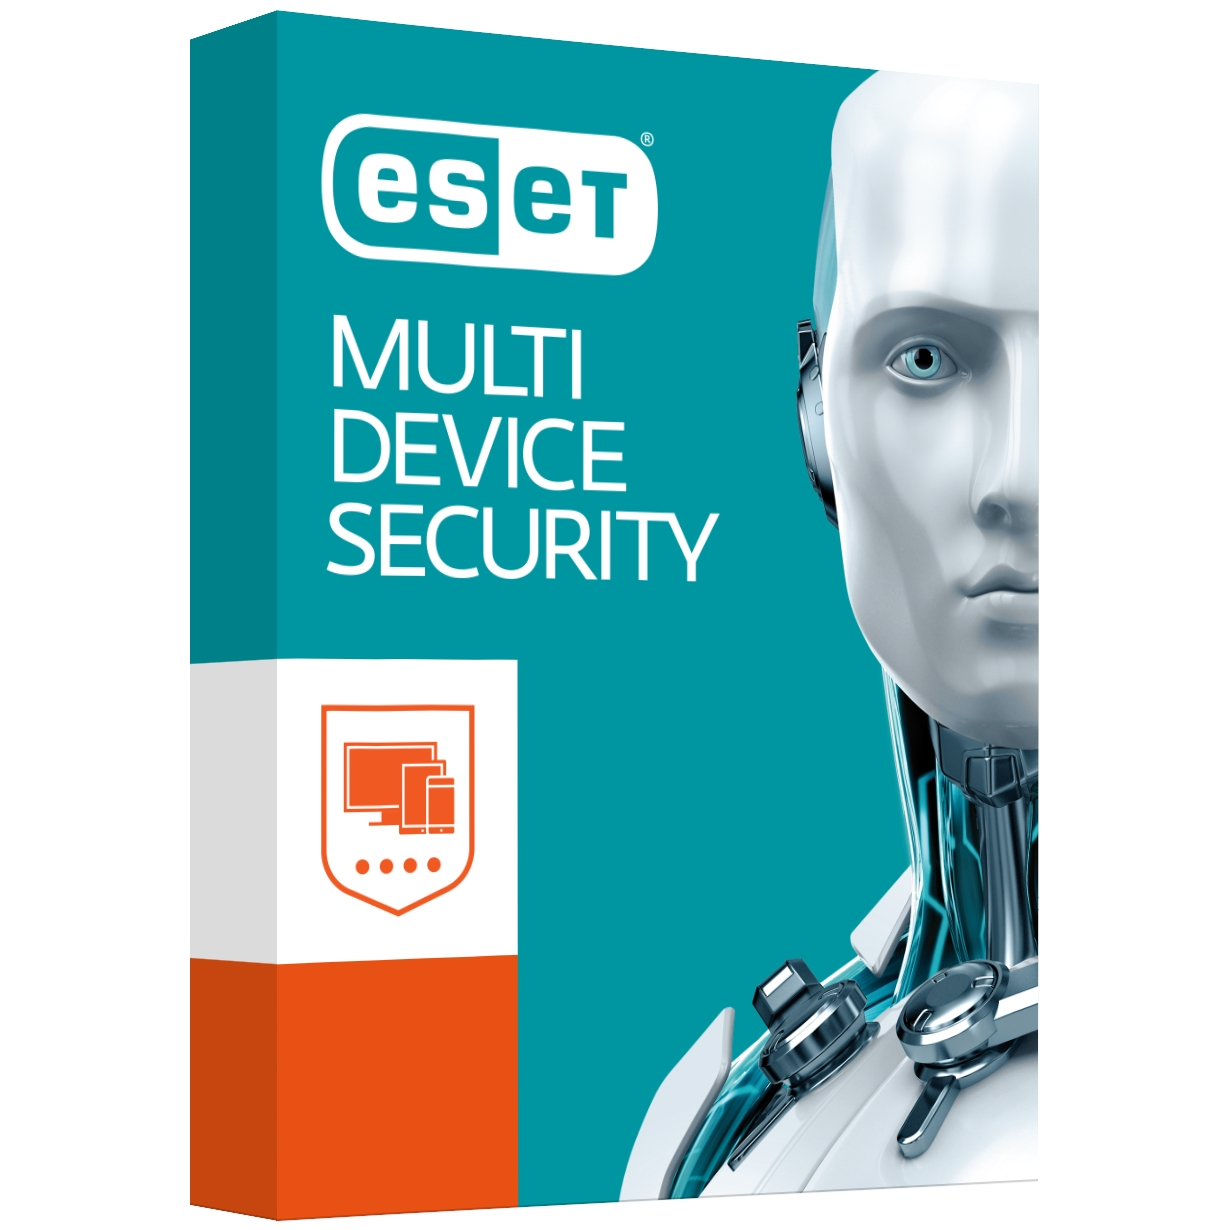 ESET NOD32 MULTI DEVICE SECURITY V10 3 KULLANICI 1 YIL